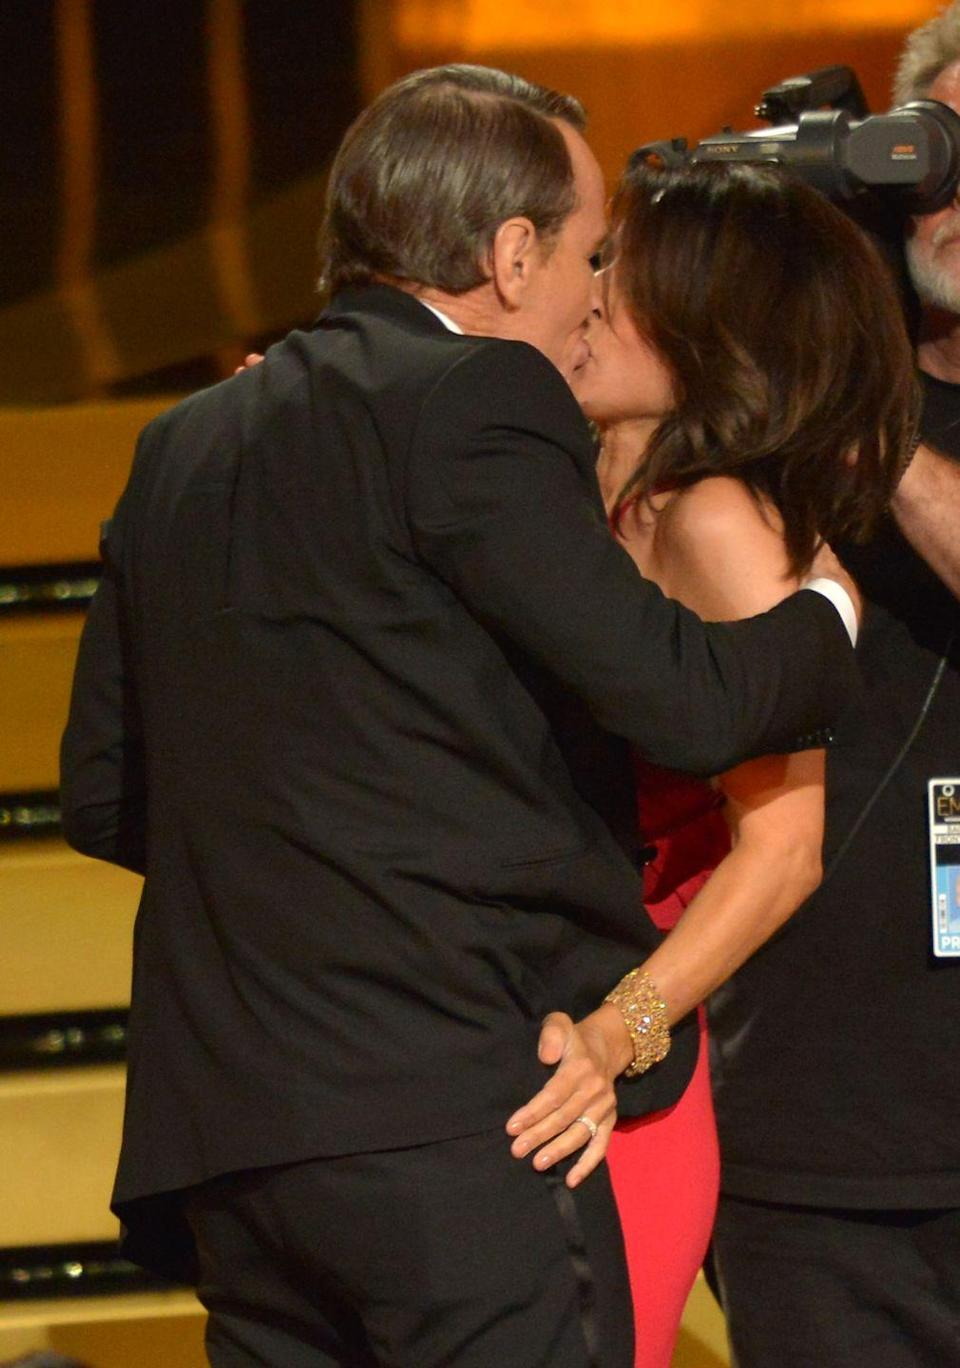 <p>Remember when Bryan Cranston appeared on <em>Seinfeld</em> as Julia Louis-Dreyfus' character's love interest? At the 2014 Emmys, they reminded everyone of that. As Louis-Dreyfus made her way to the stage to accept her award for Outstanding Lead Actress in a Comedy Series, Cranston grabbed her for a quick makeout session. <br></p>